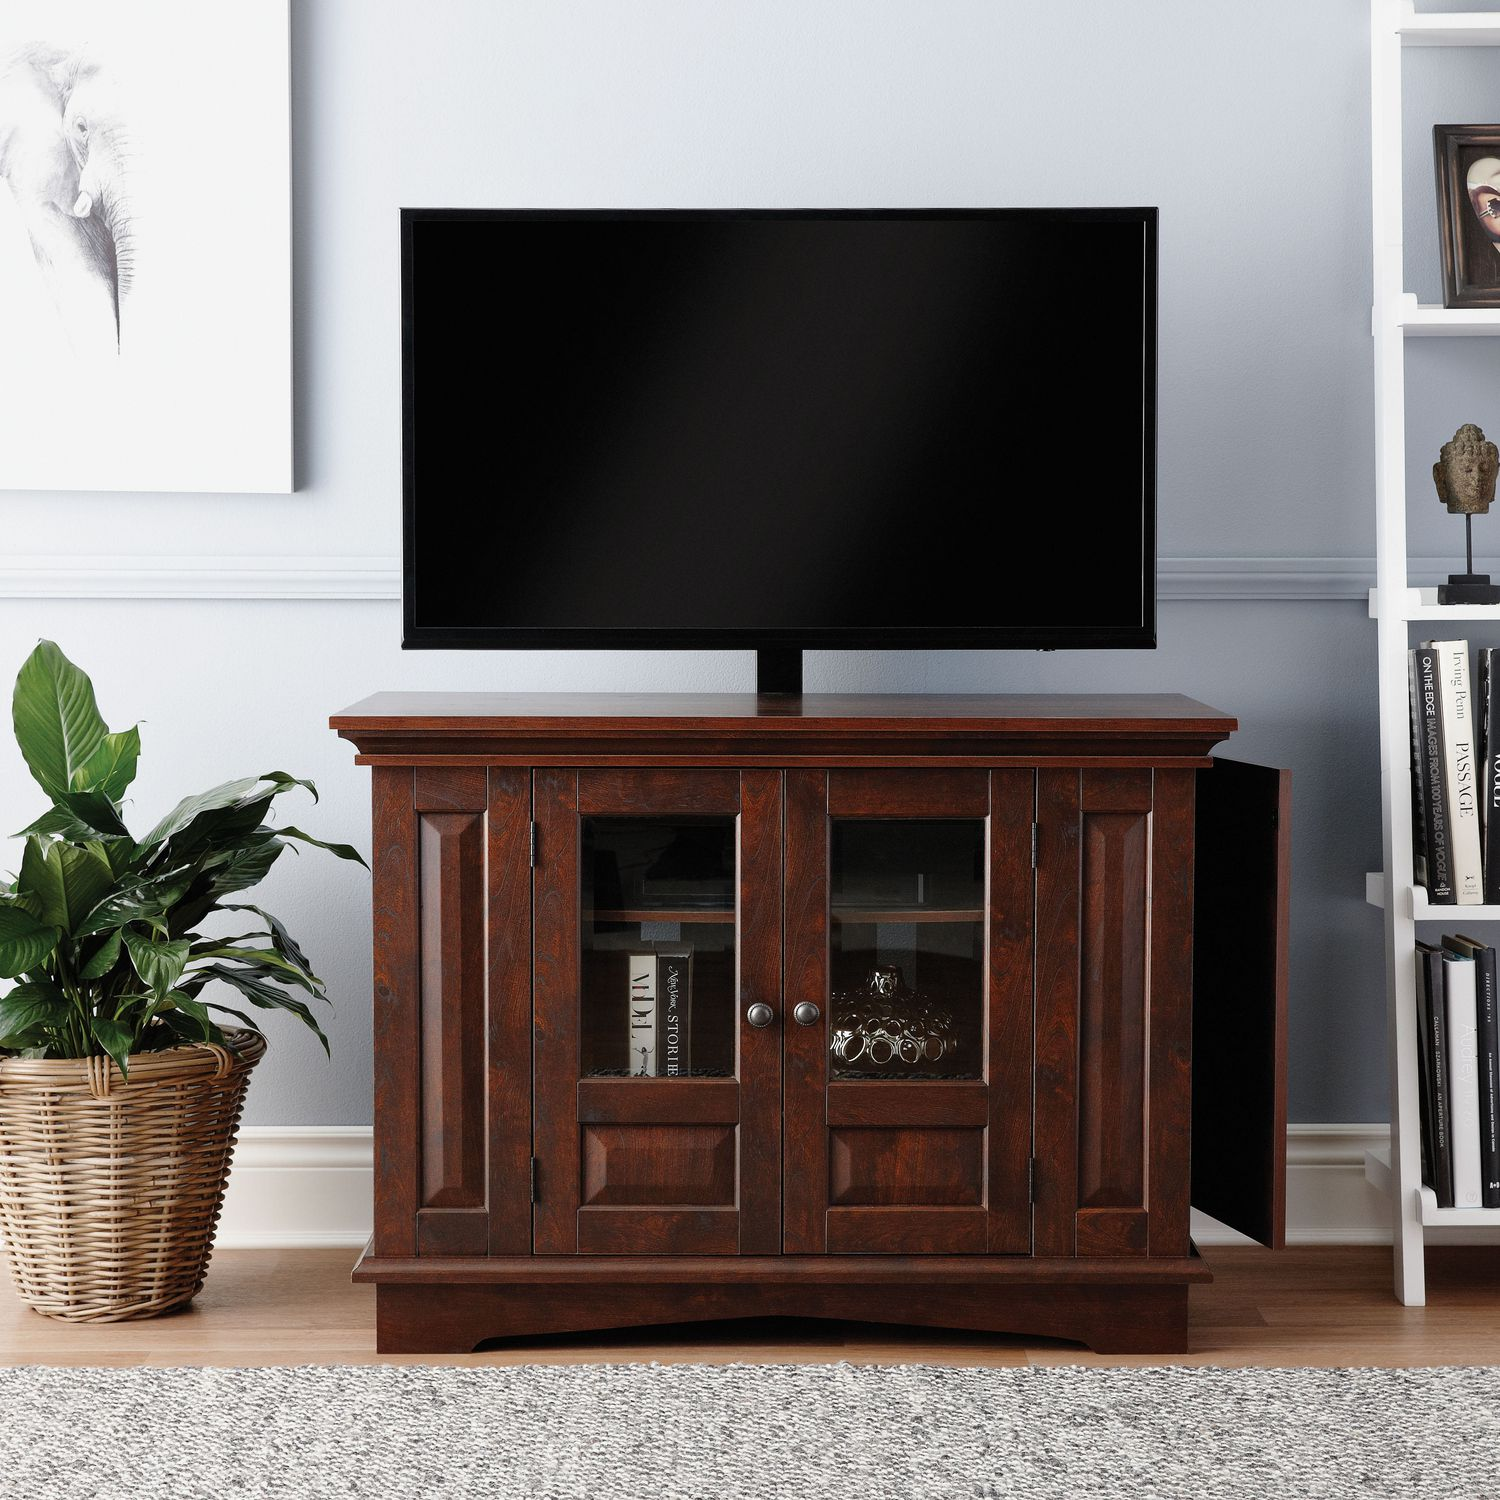 buy tv stands online  walmart canada - willow mountain tv stand with mount